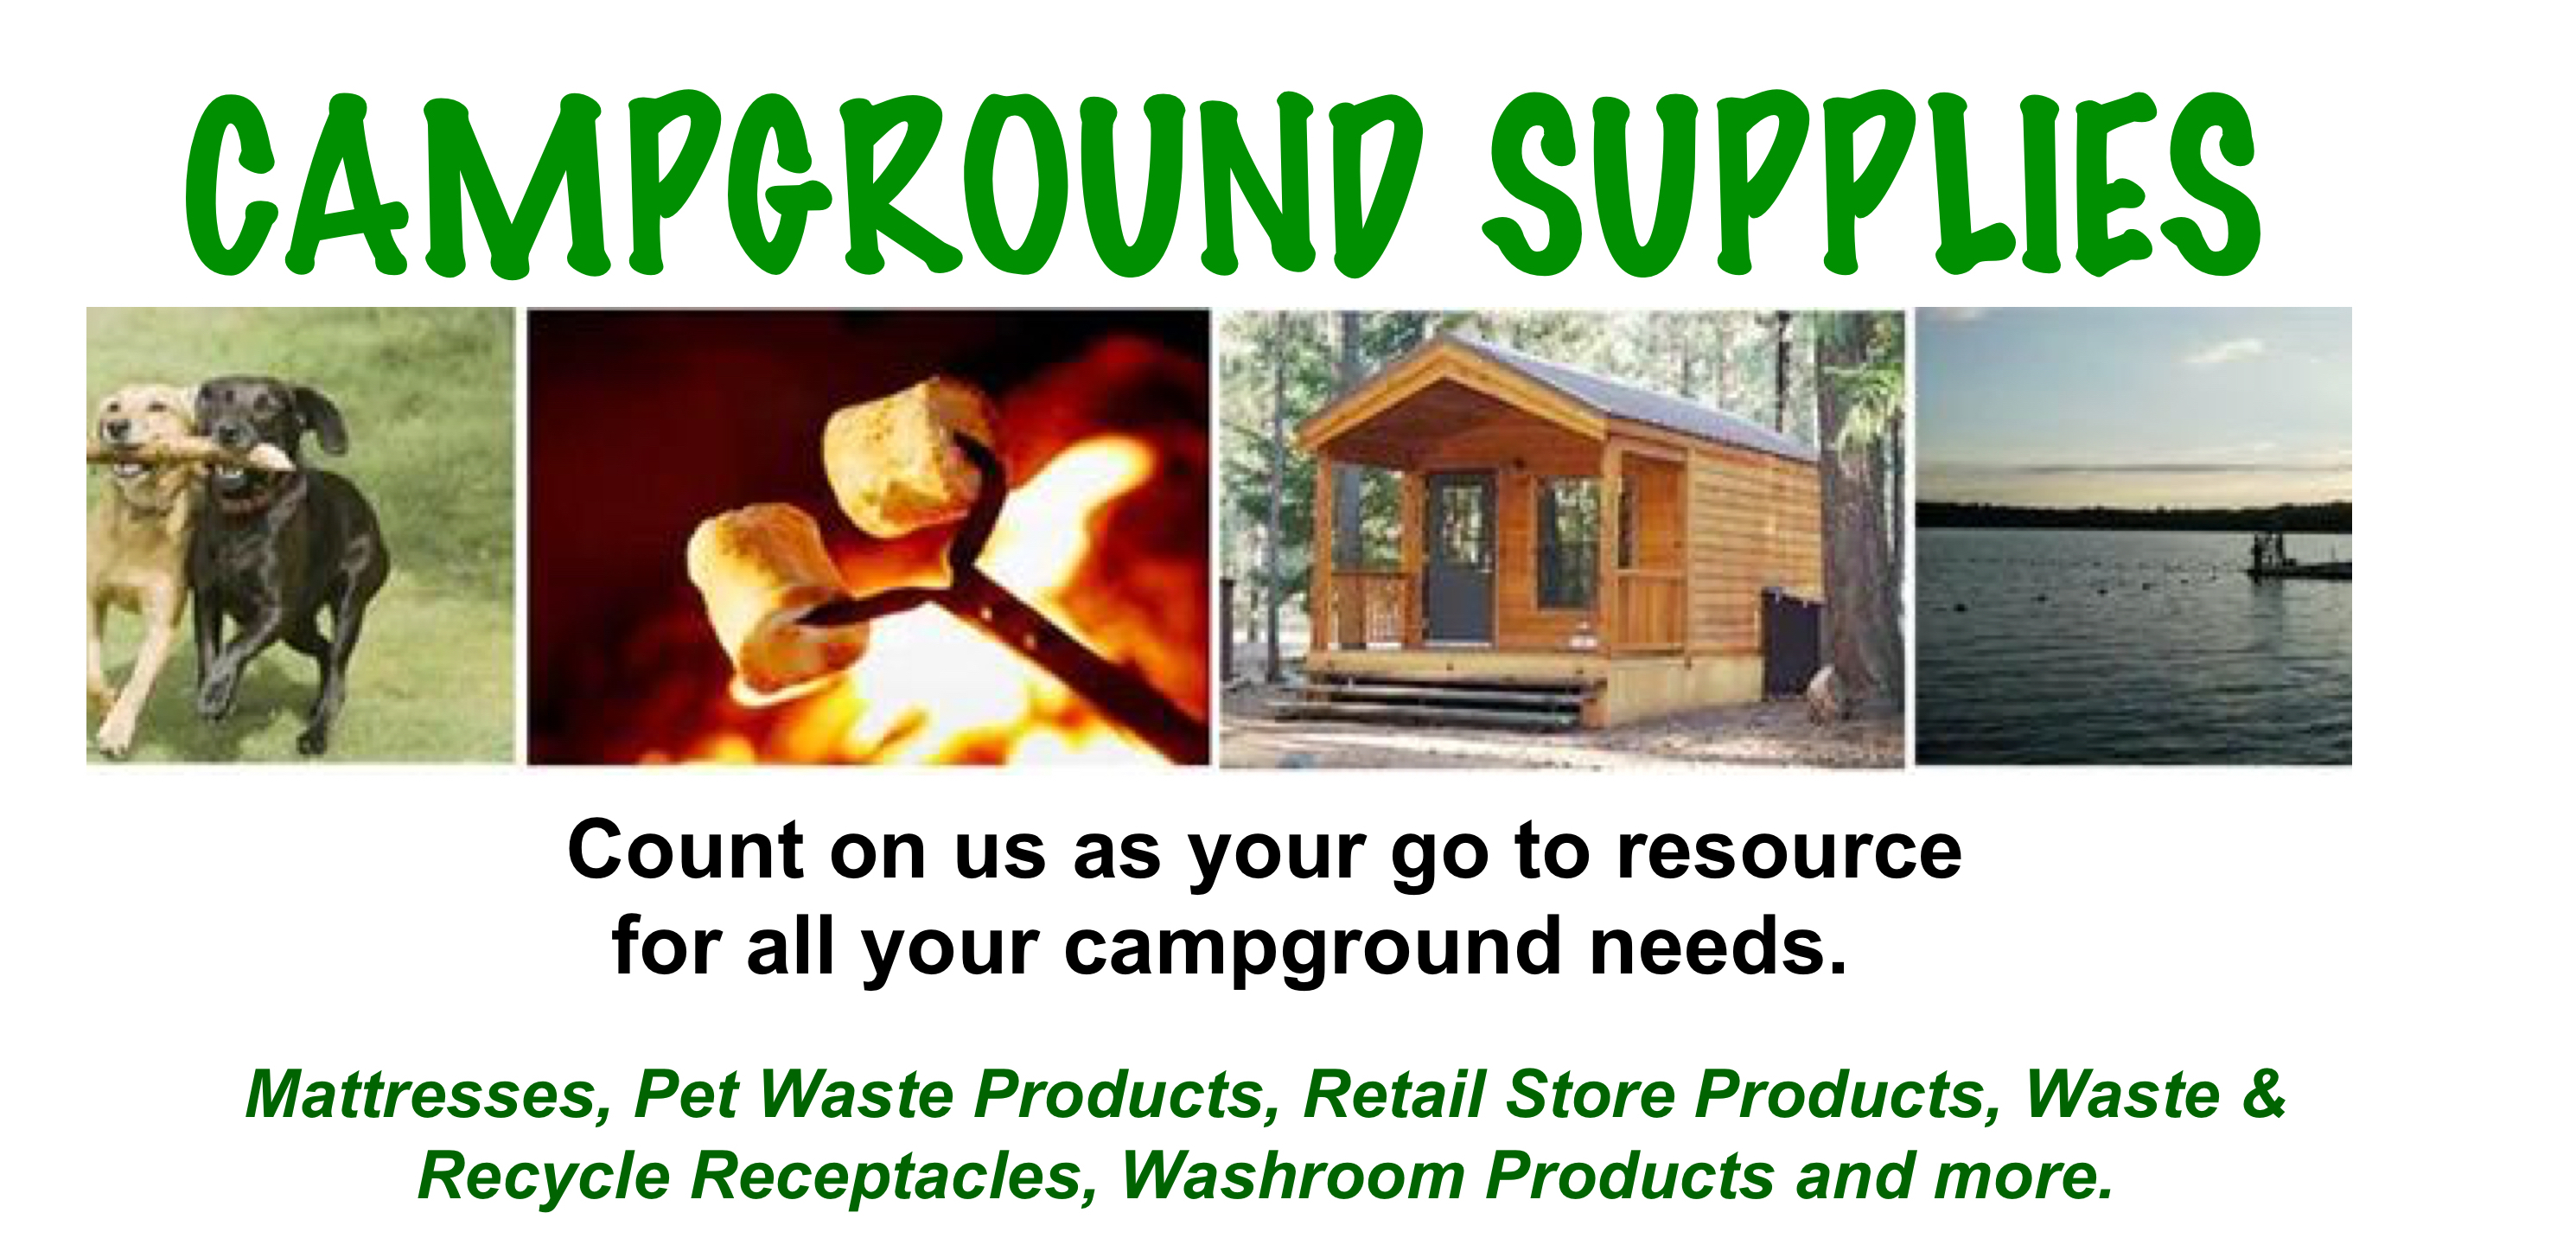 Come Visit Us at the Upcoming 2018 Spring Campground Tradeshows